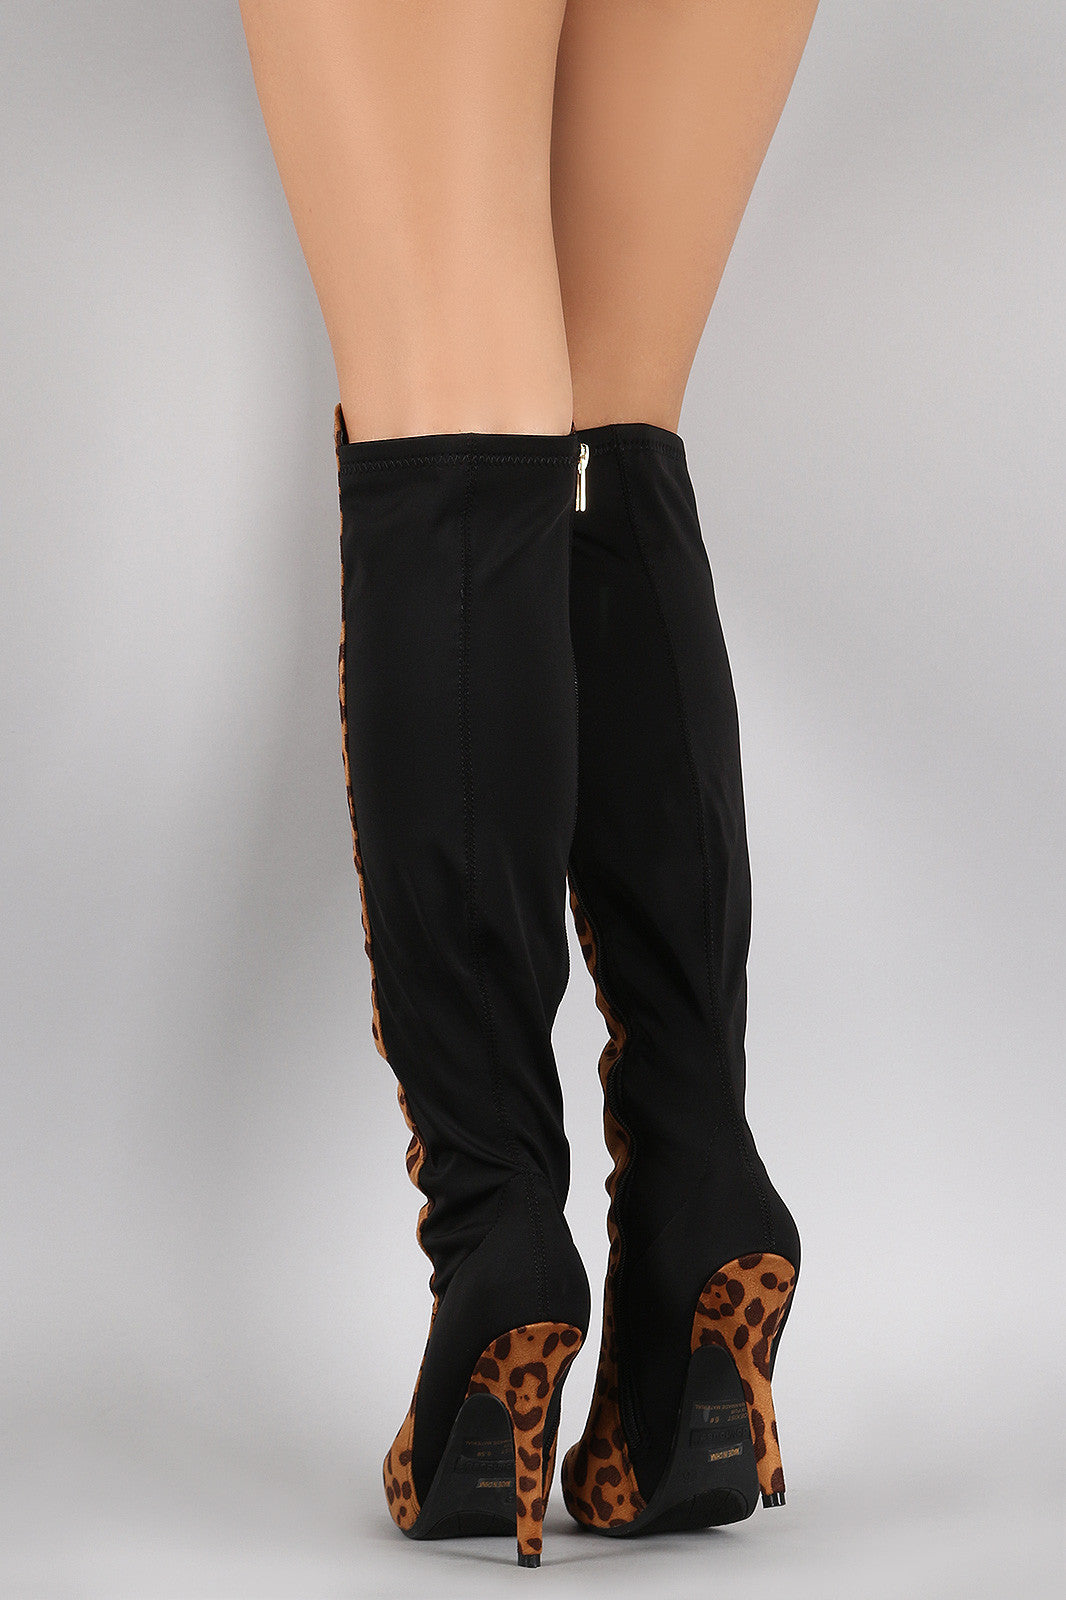 Dollhouse Leopard Contrast Panel Stiletto Over-The-Knee Boots - Thick 'N' Curvy Shop - 3